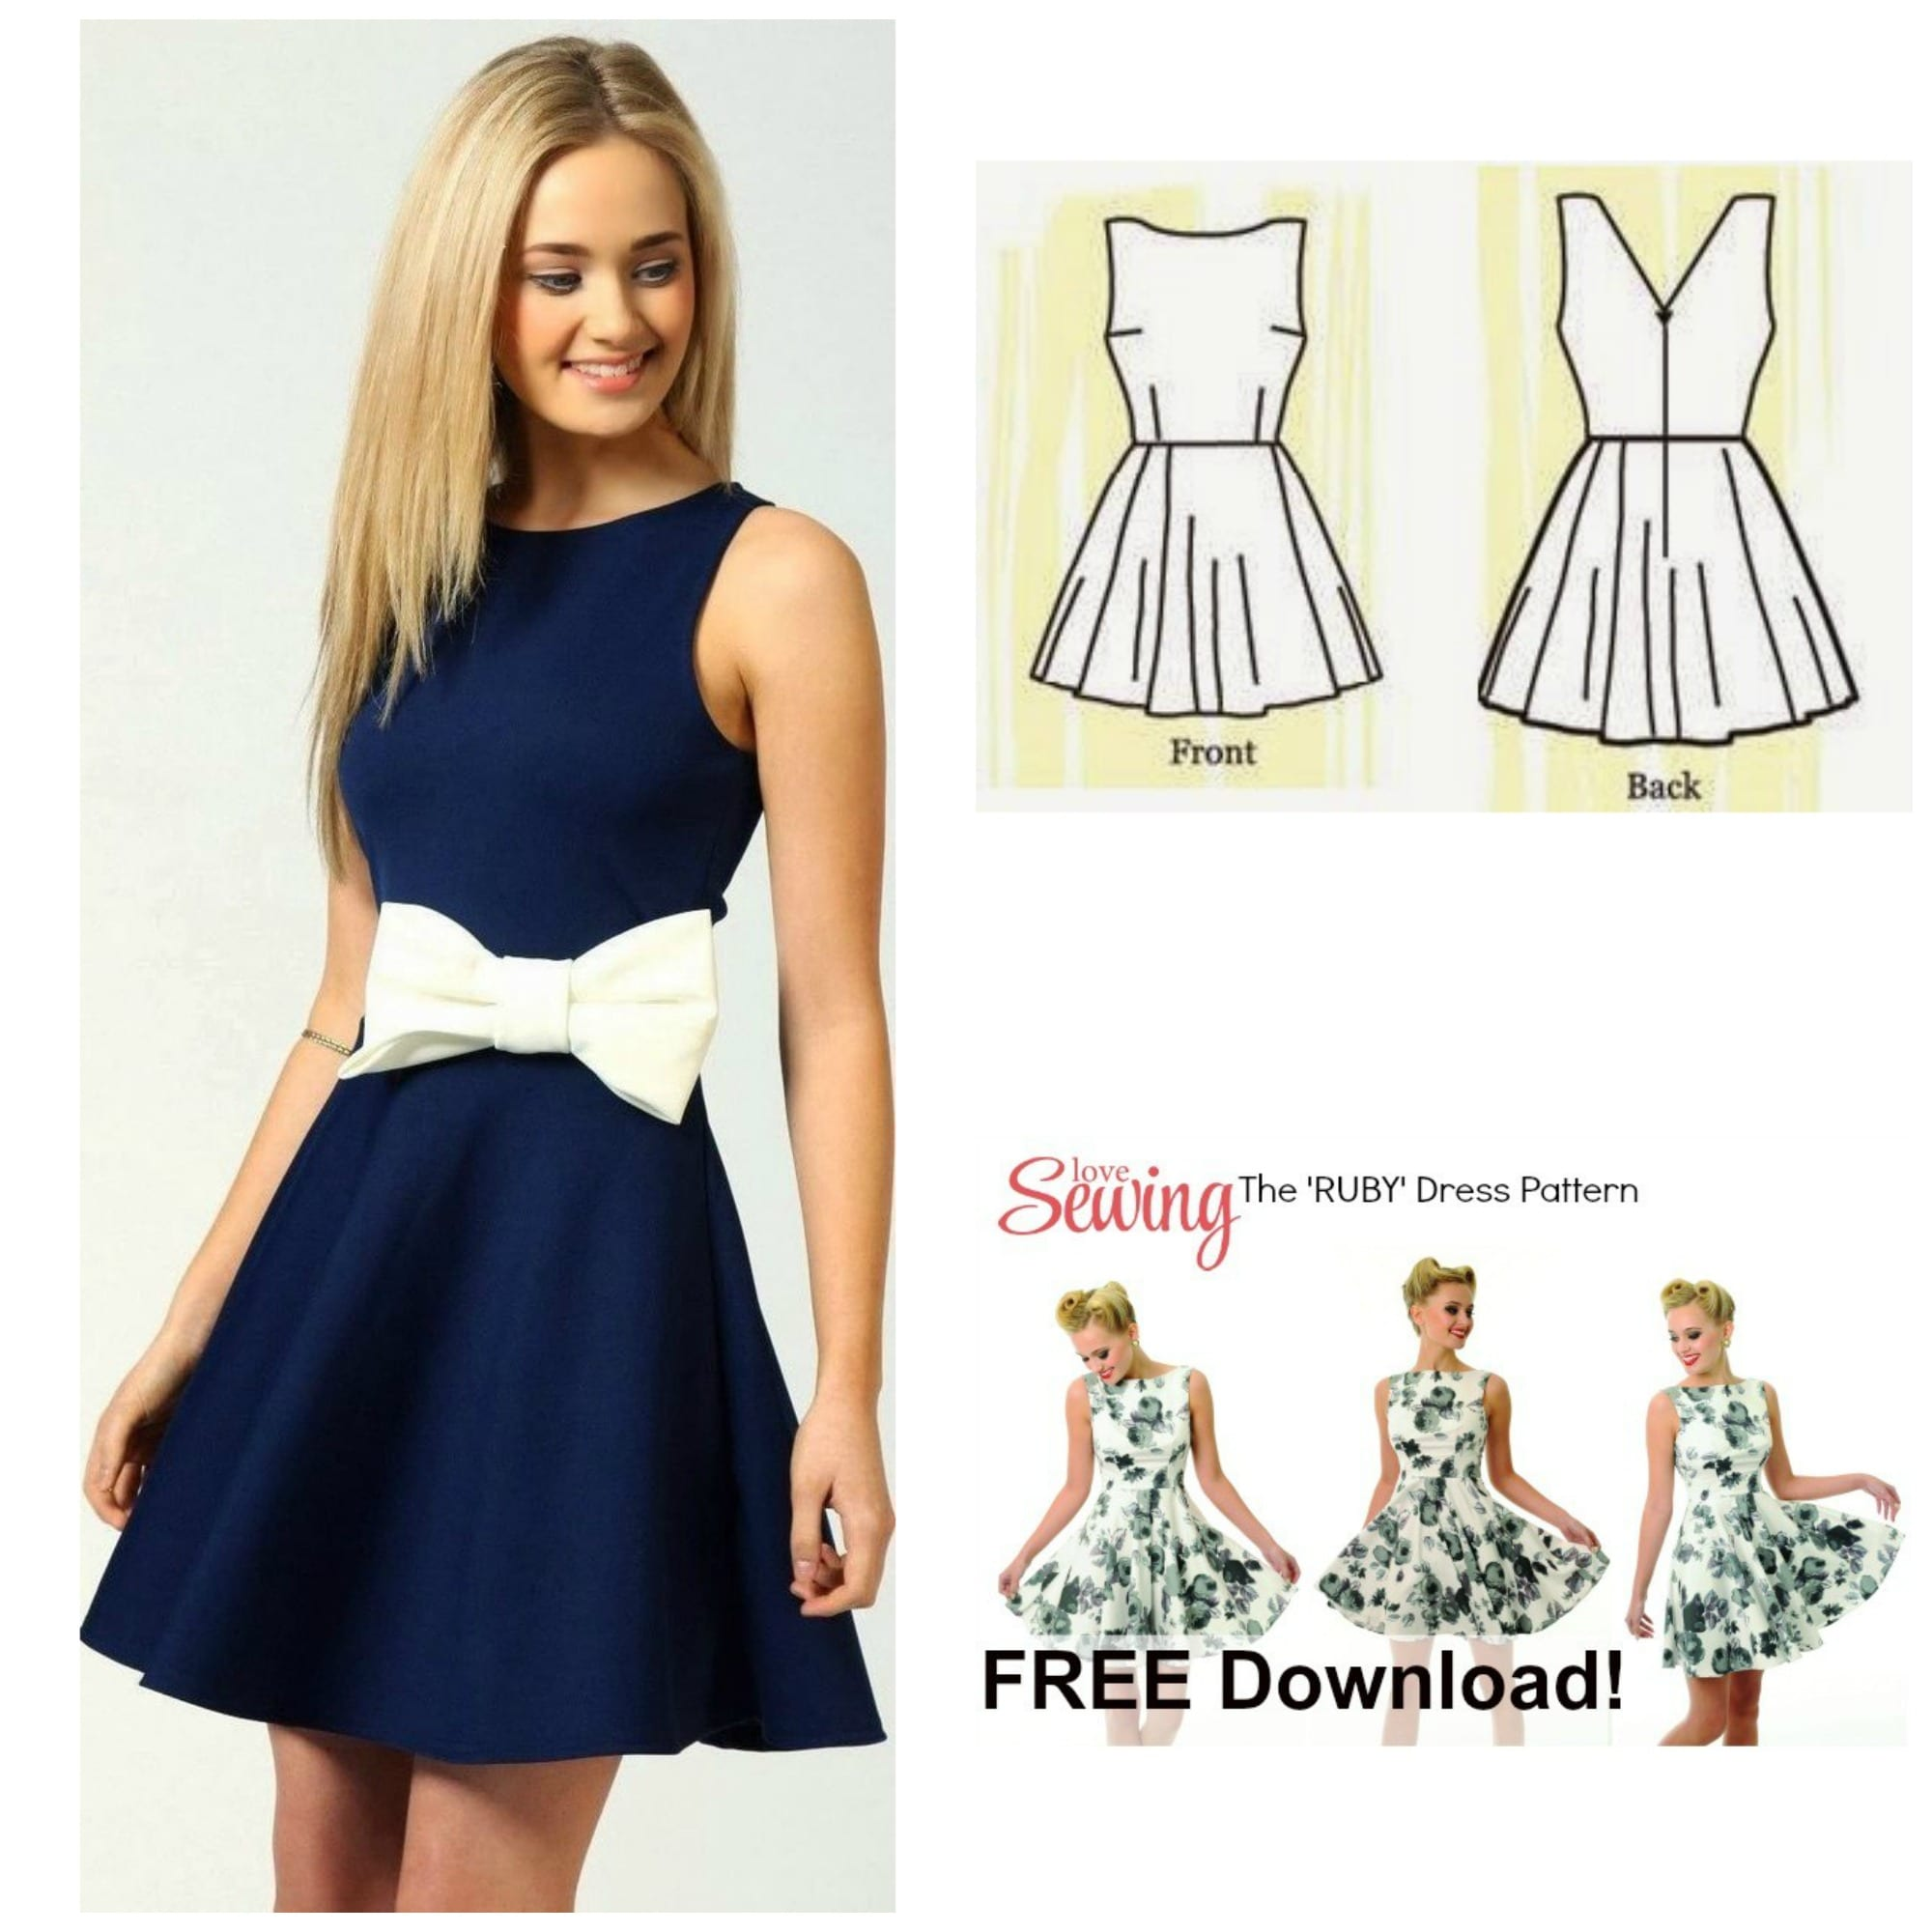 Clothes patterns online free